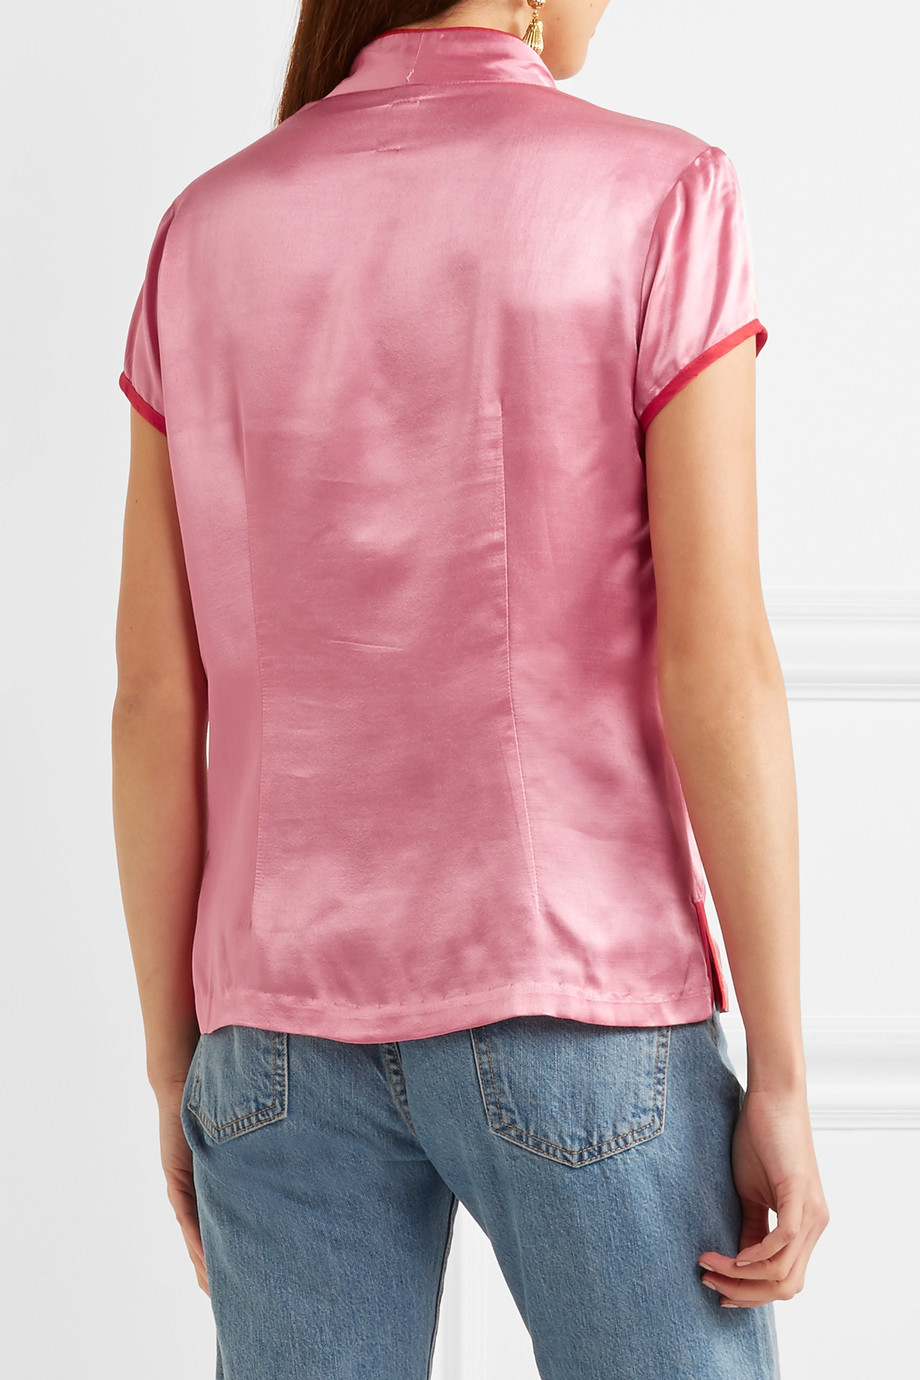 Satin blouse Staud buy Satin blouse Staud internet shop